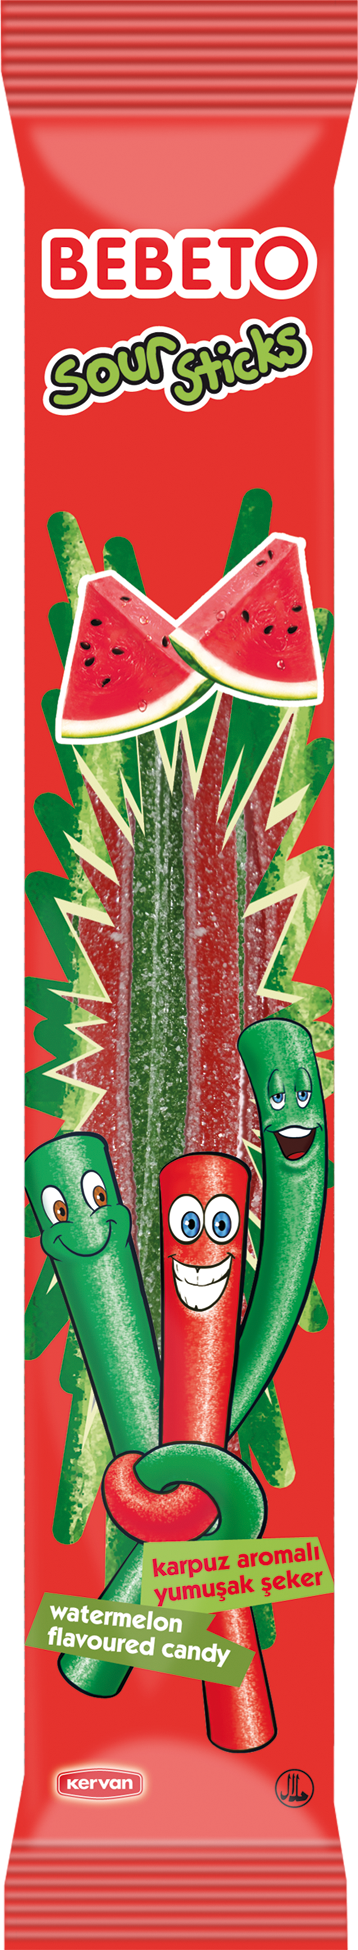 Bebeto Sour sticks watermelon